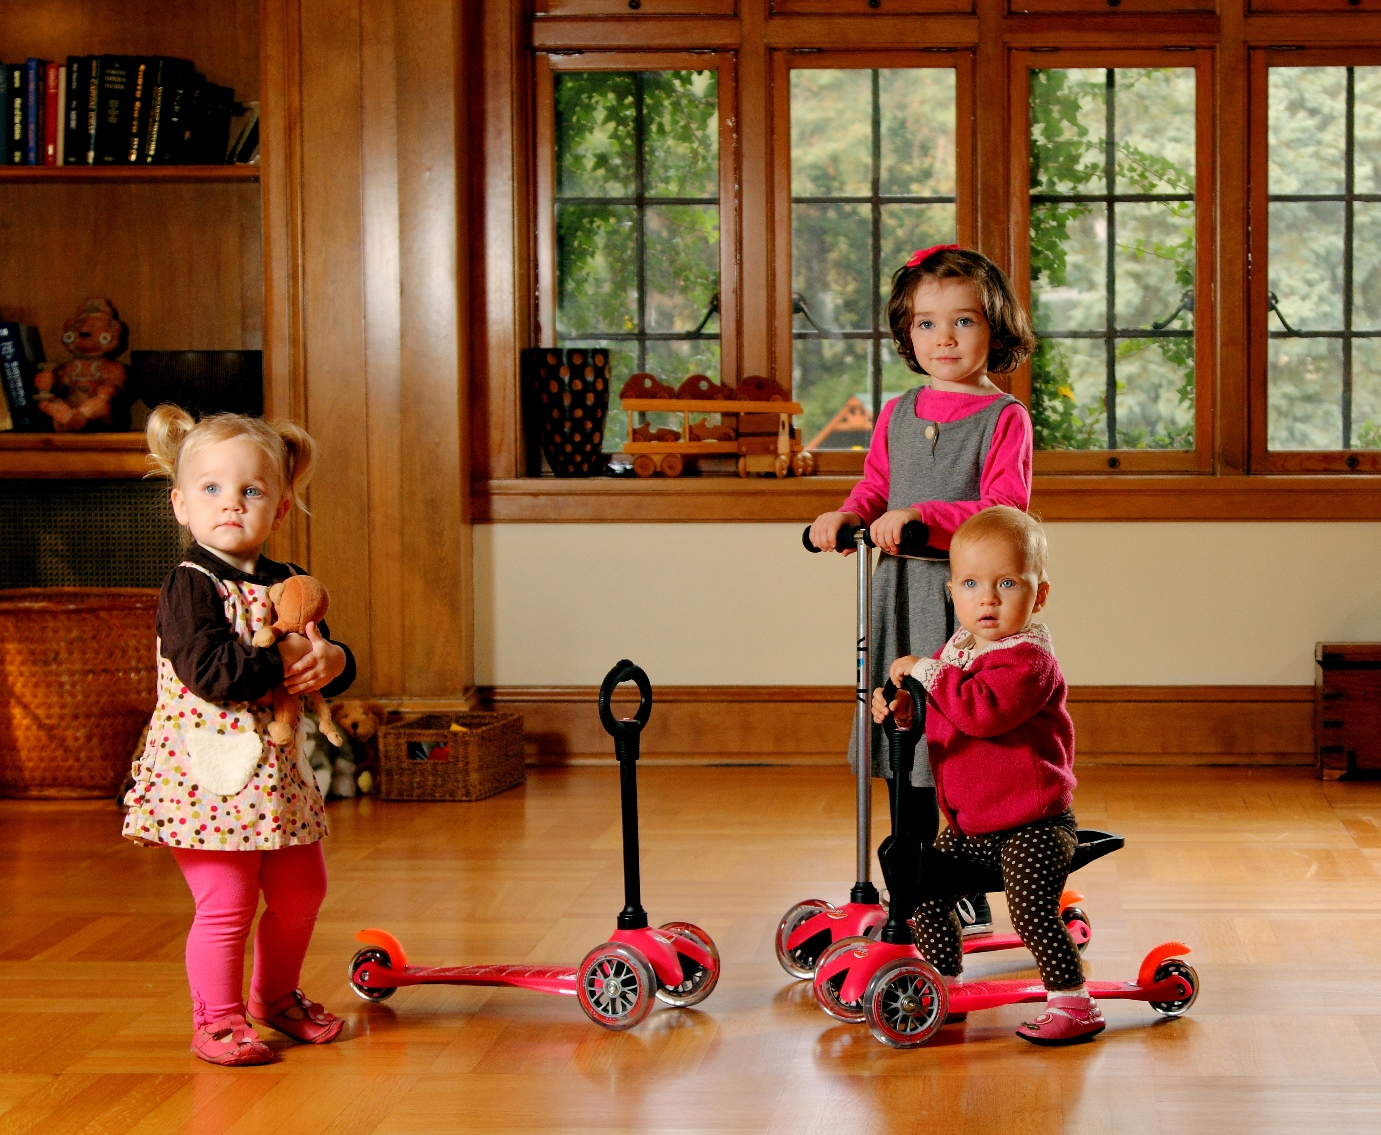 micro mini 3 in 1 kick scooter 21 great gift ideas for 1. Black Bedroom Furniture Sets. Home Design Ideas